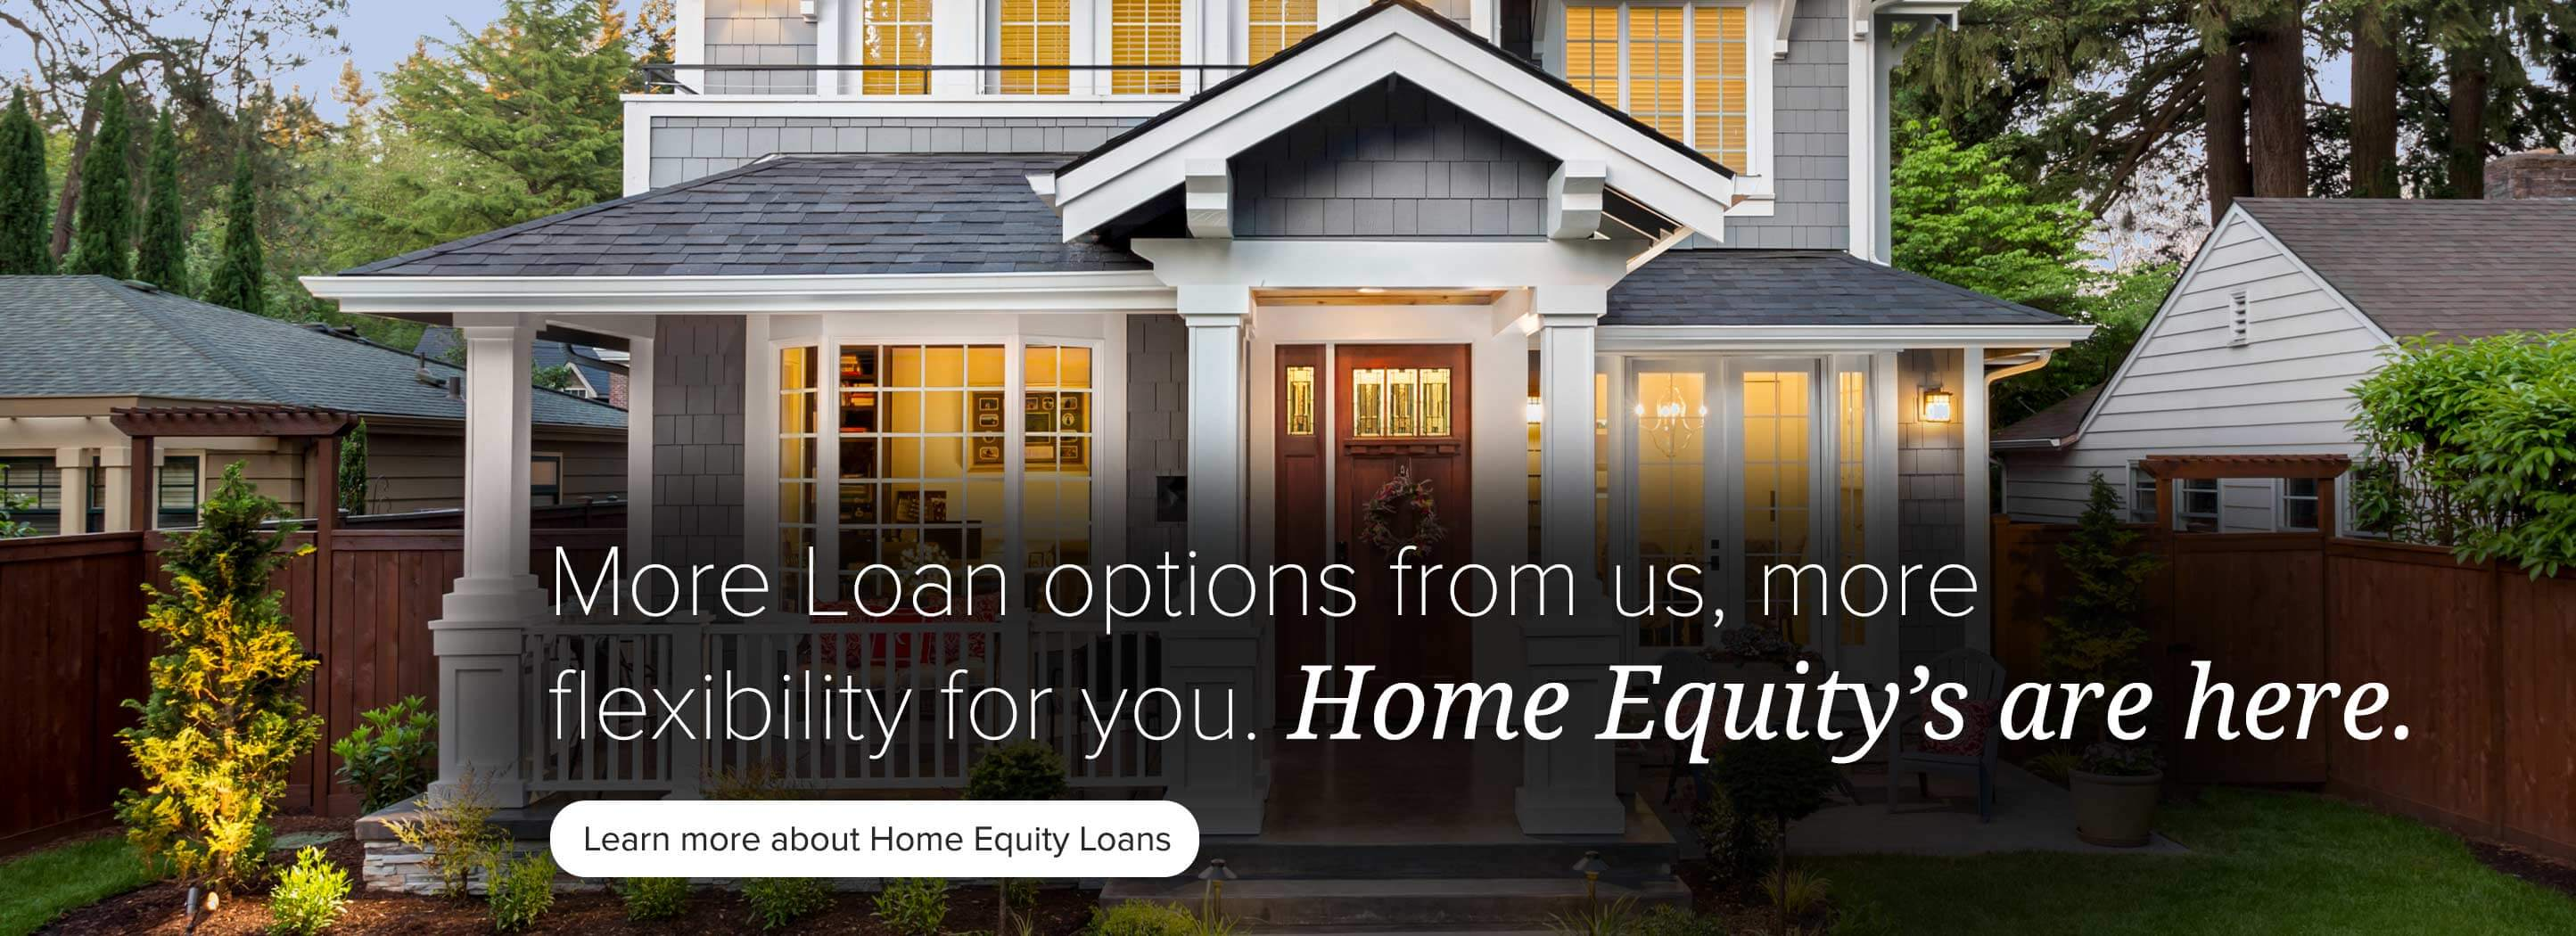 More loan options from us, more flexibility for you. Home Equity's are here. Learn more.